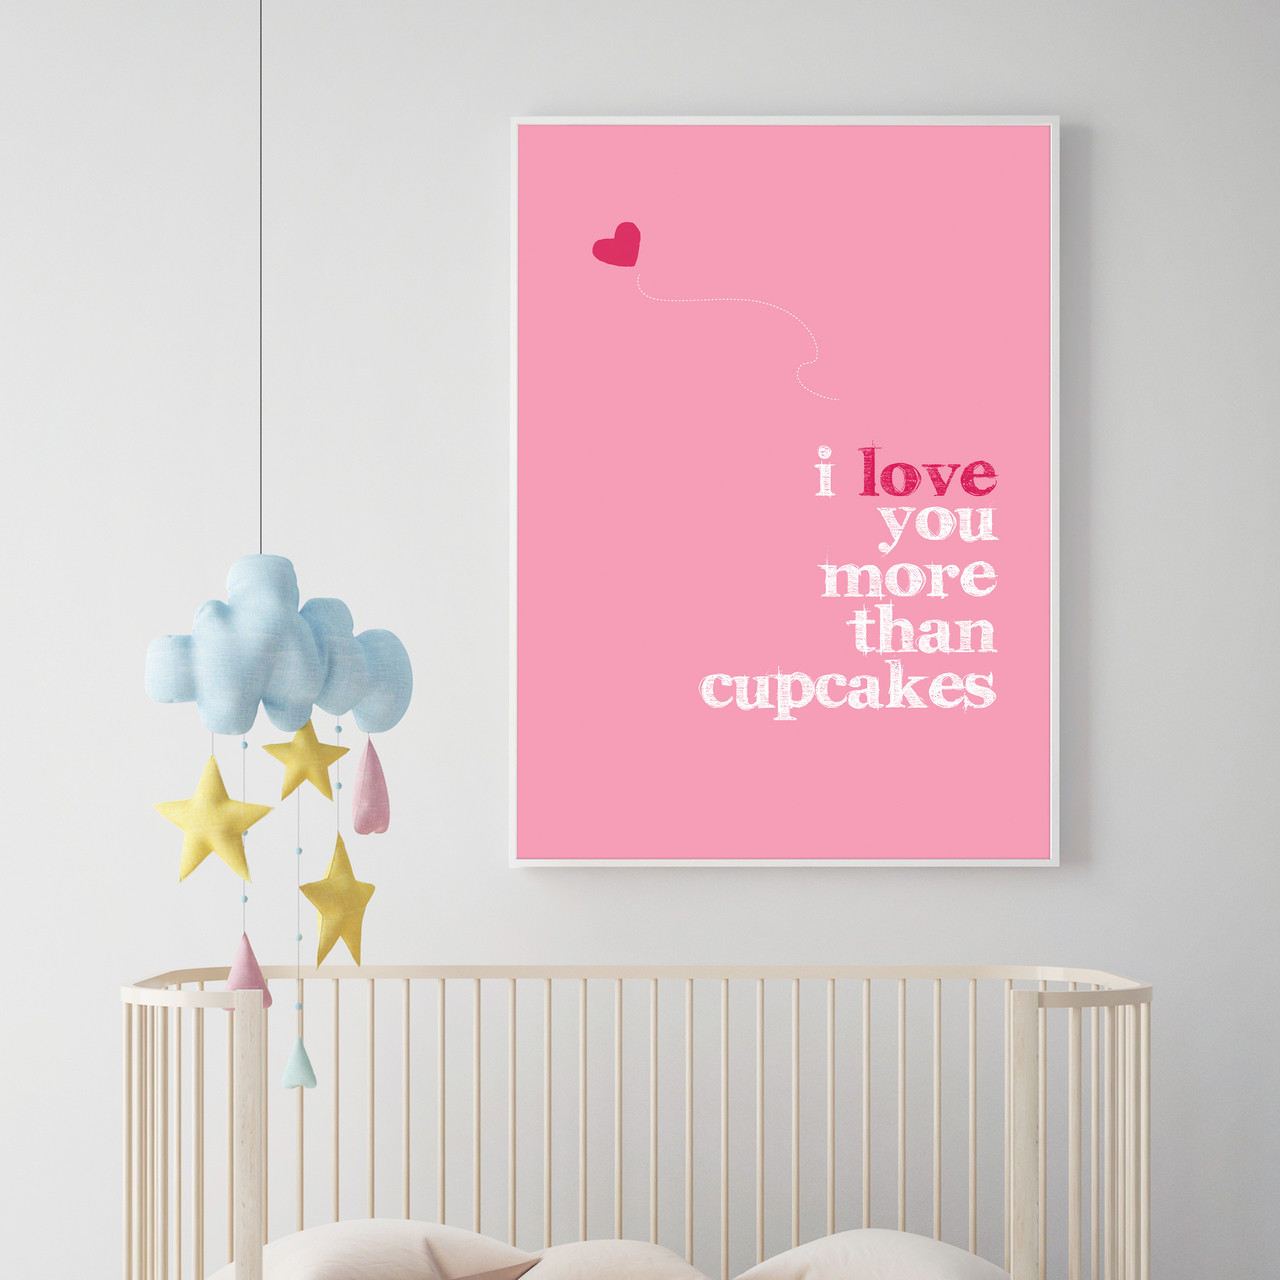 I Love You More Than Cupcakes Almond Tree Designs Wall Art Gifts